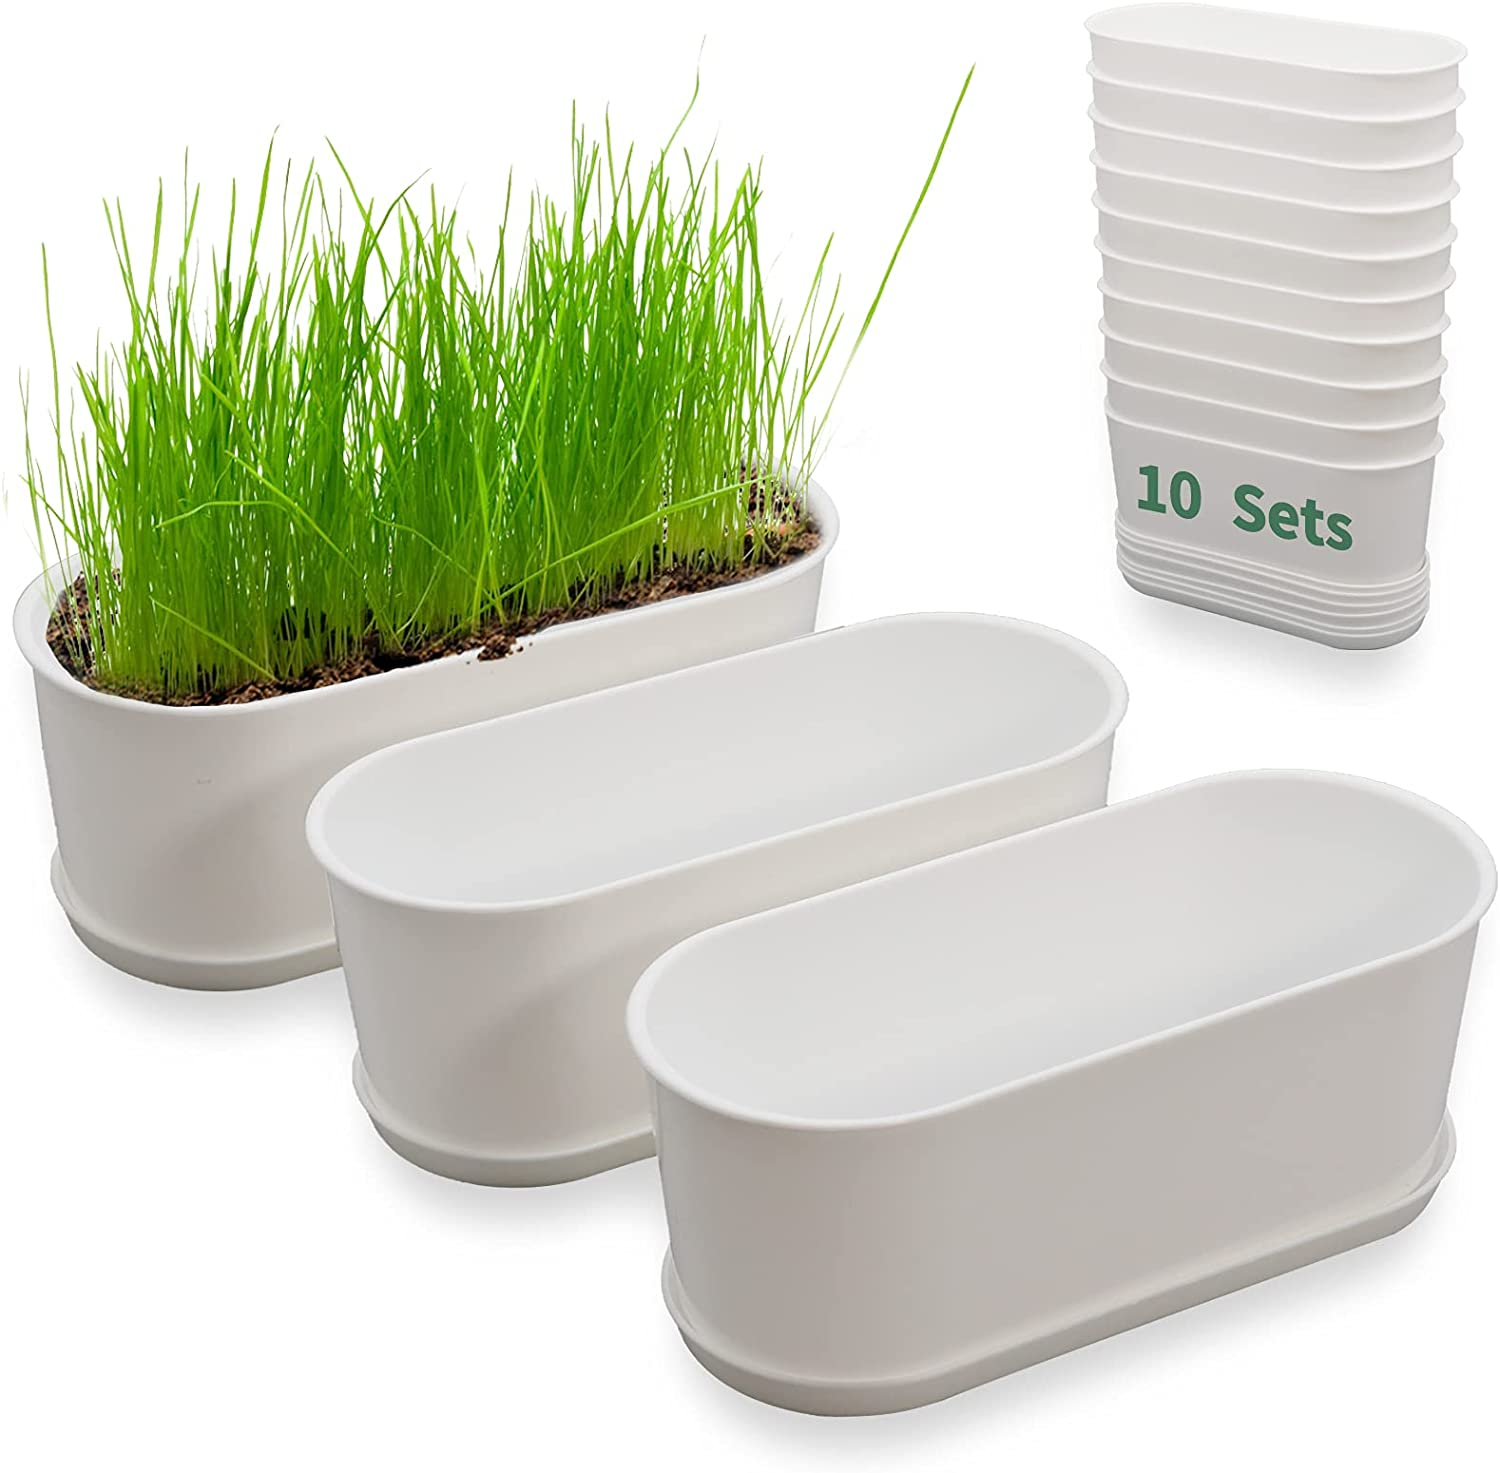 Plant Window Box with Saucers 10 Sets Plastic Planters with Multiple Drainage Holes and Trays Flower Pots for Home Garden Succulents Modern Decorative Window Planter Box Gardening Pot Plant Container